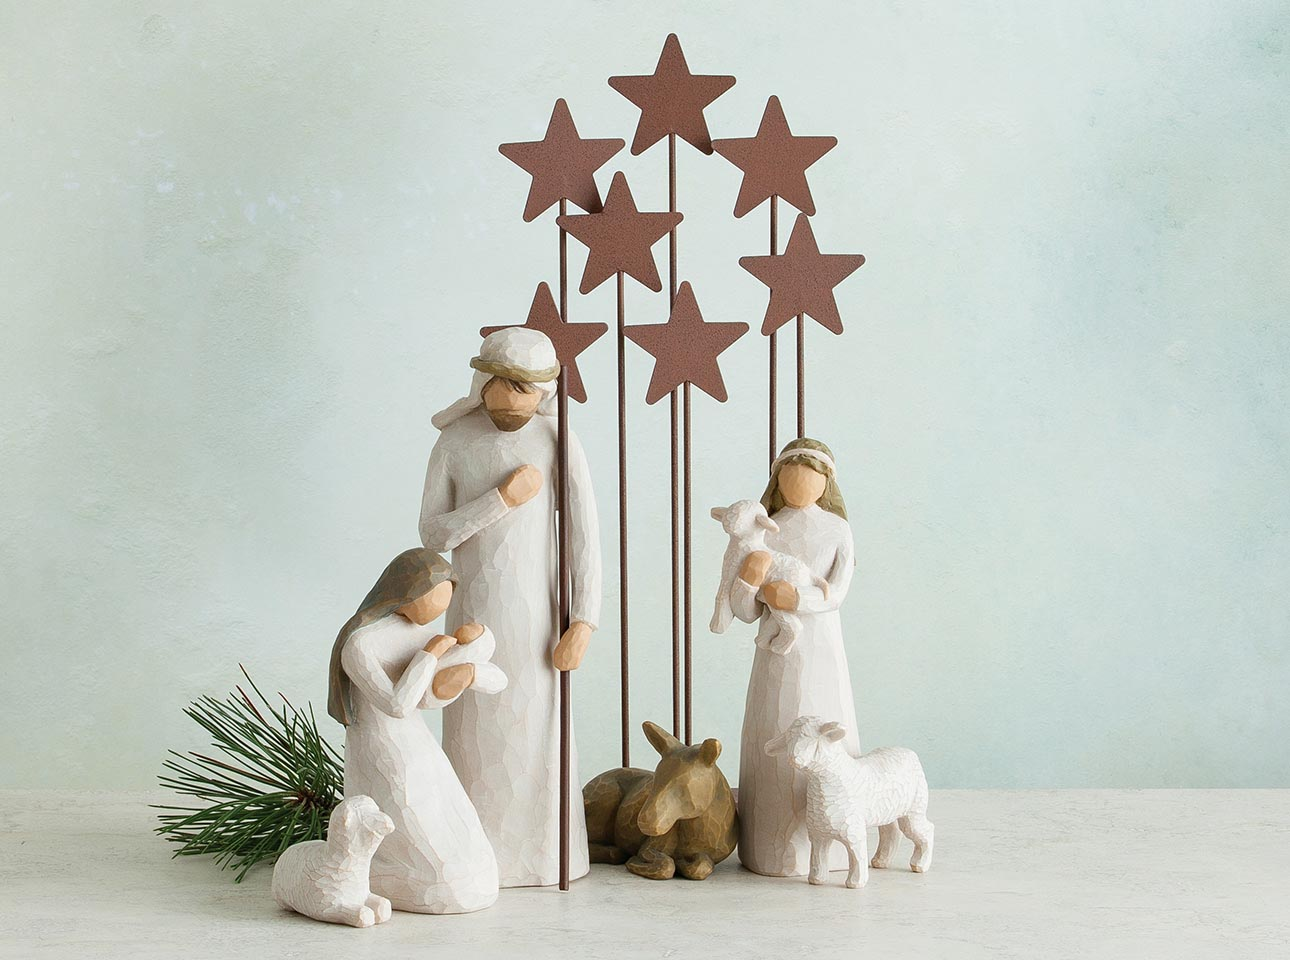 Christmas Nativity.Nativity Set Displays Hand Sculpted Figures Willow Tree